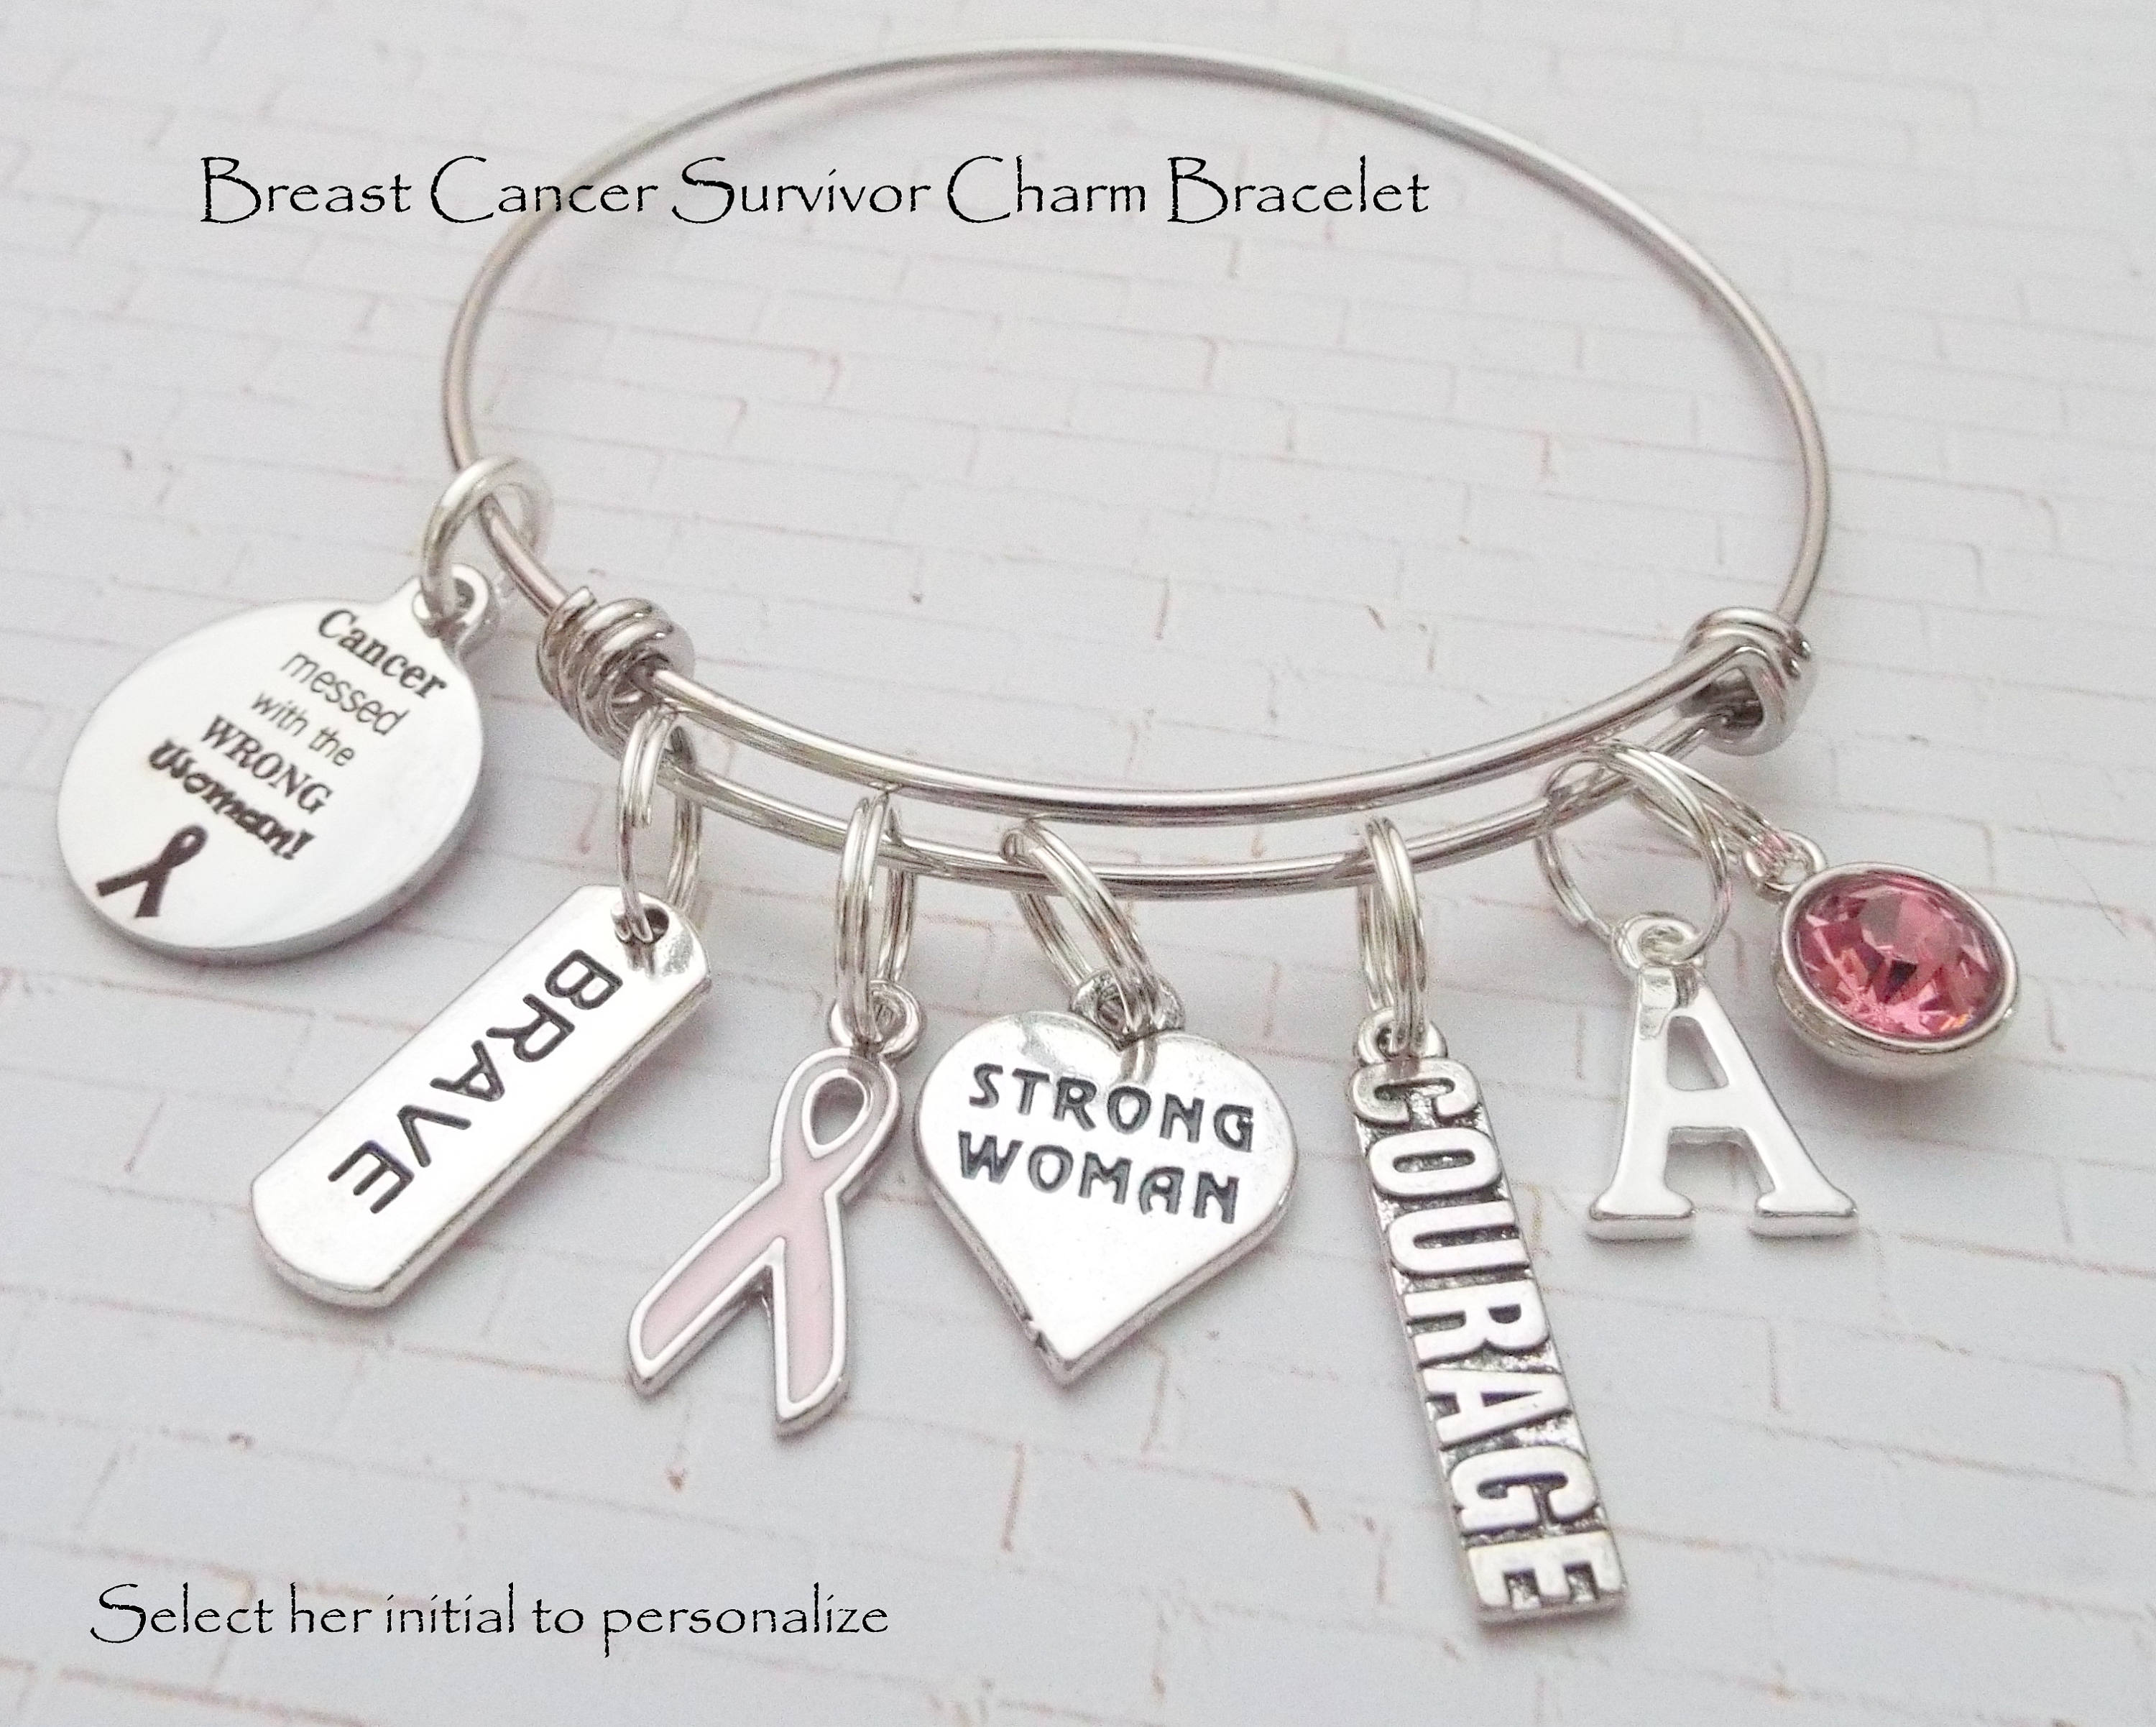 bracelet awareness n survivor moms cancer fundraiser breast charge giveaway